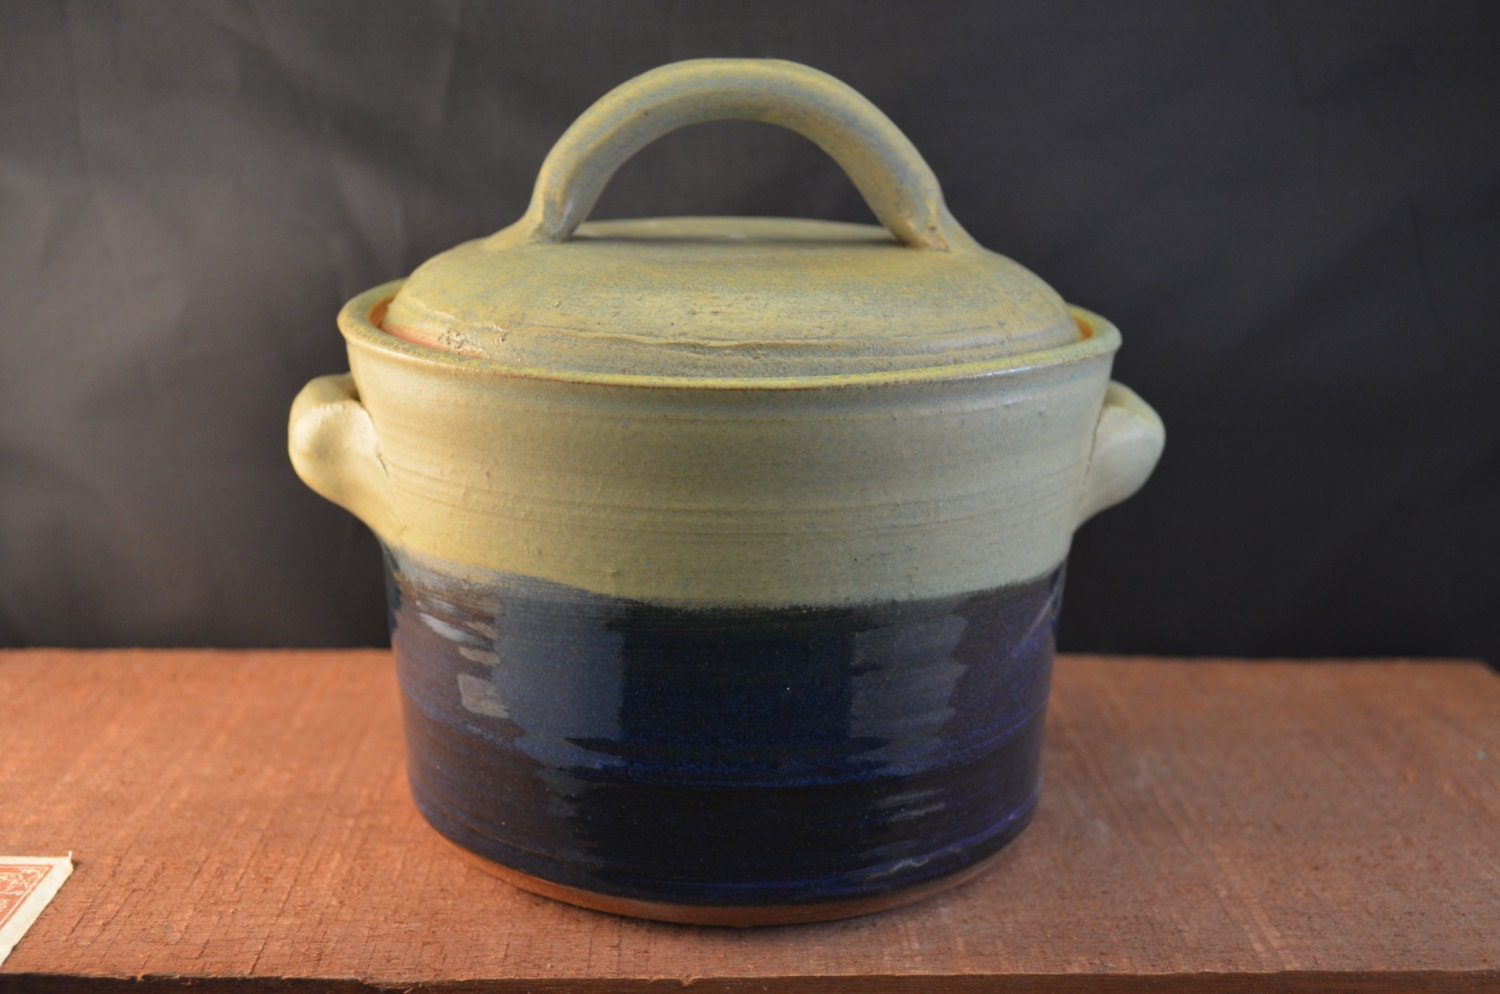 Handmade Ceramic Canister, Cookie Jar, Lidded Kitchen Storage with Handles - Large- Moss Green and Indigo Blue